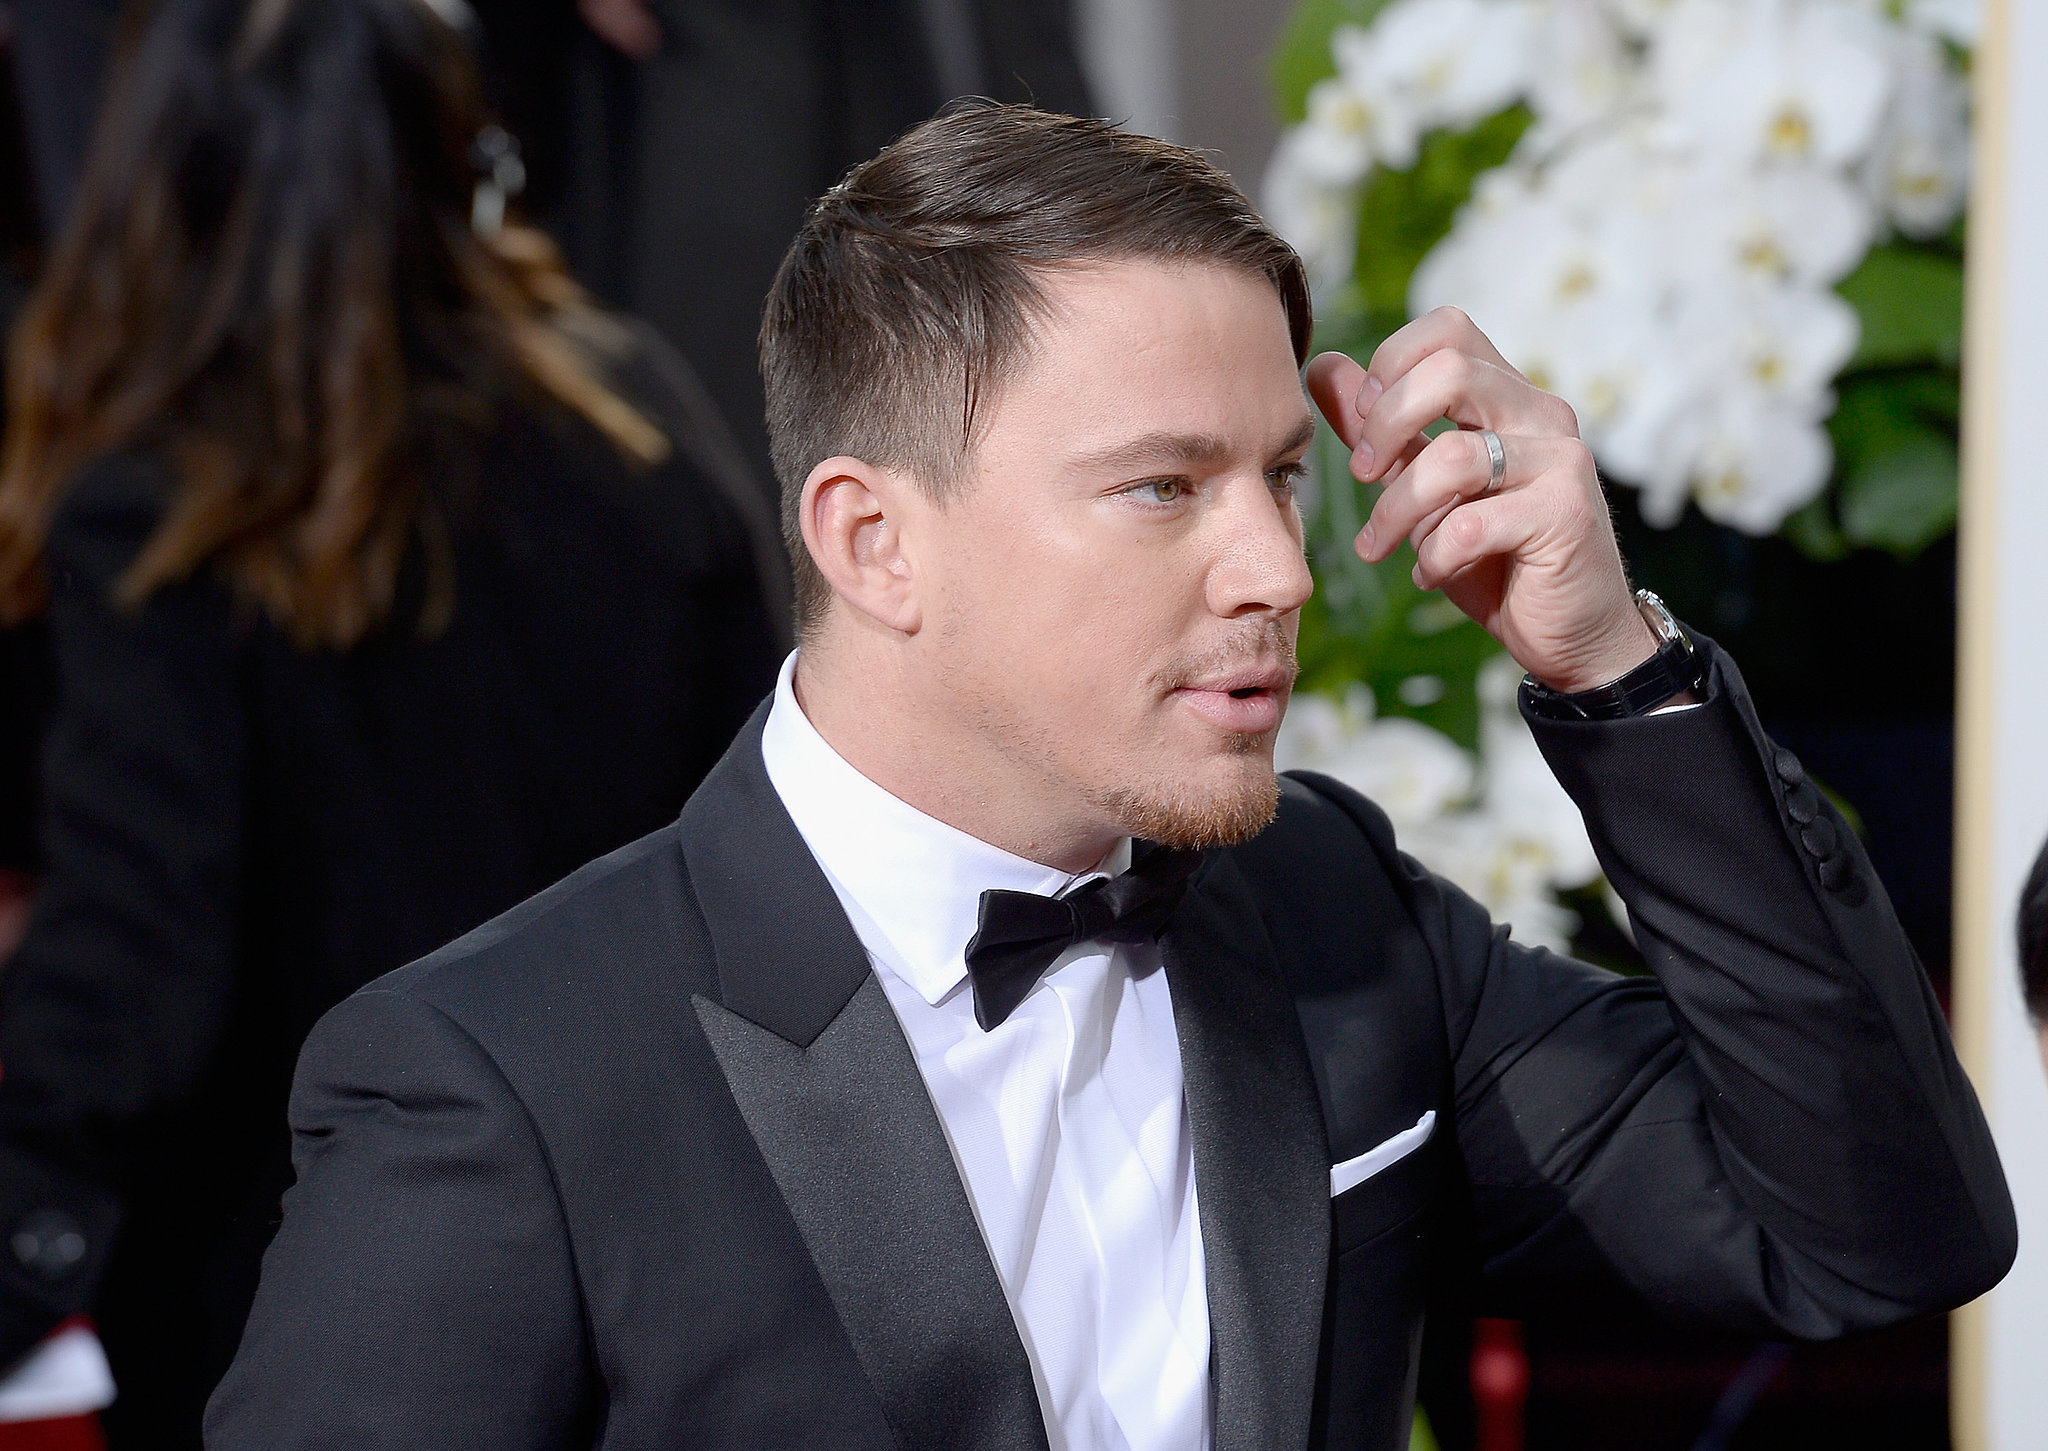 channing tatum full hd wallpaper and background image | 2048x1451